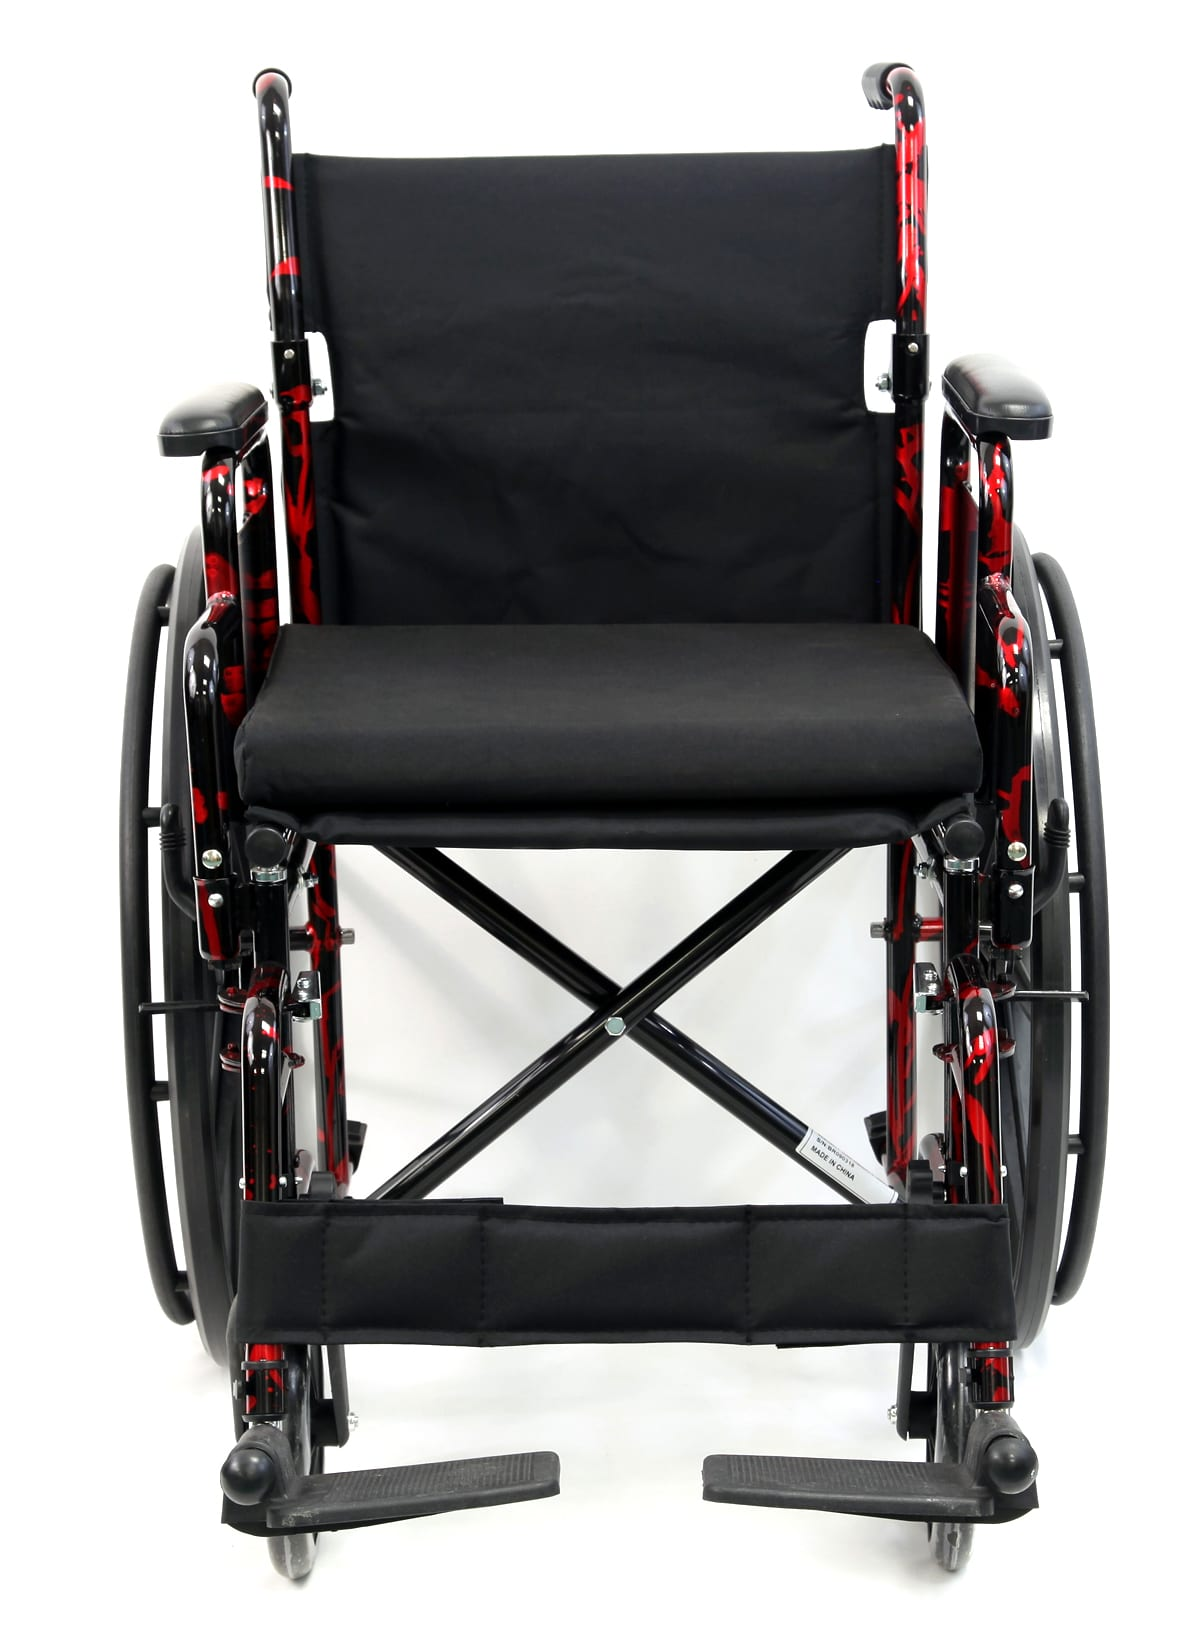 ergonomic chair replacement parts plastic patio chairs lowes lt-770q - 37 lbs red streak quick release wheels lightweight karman